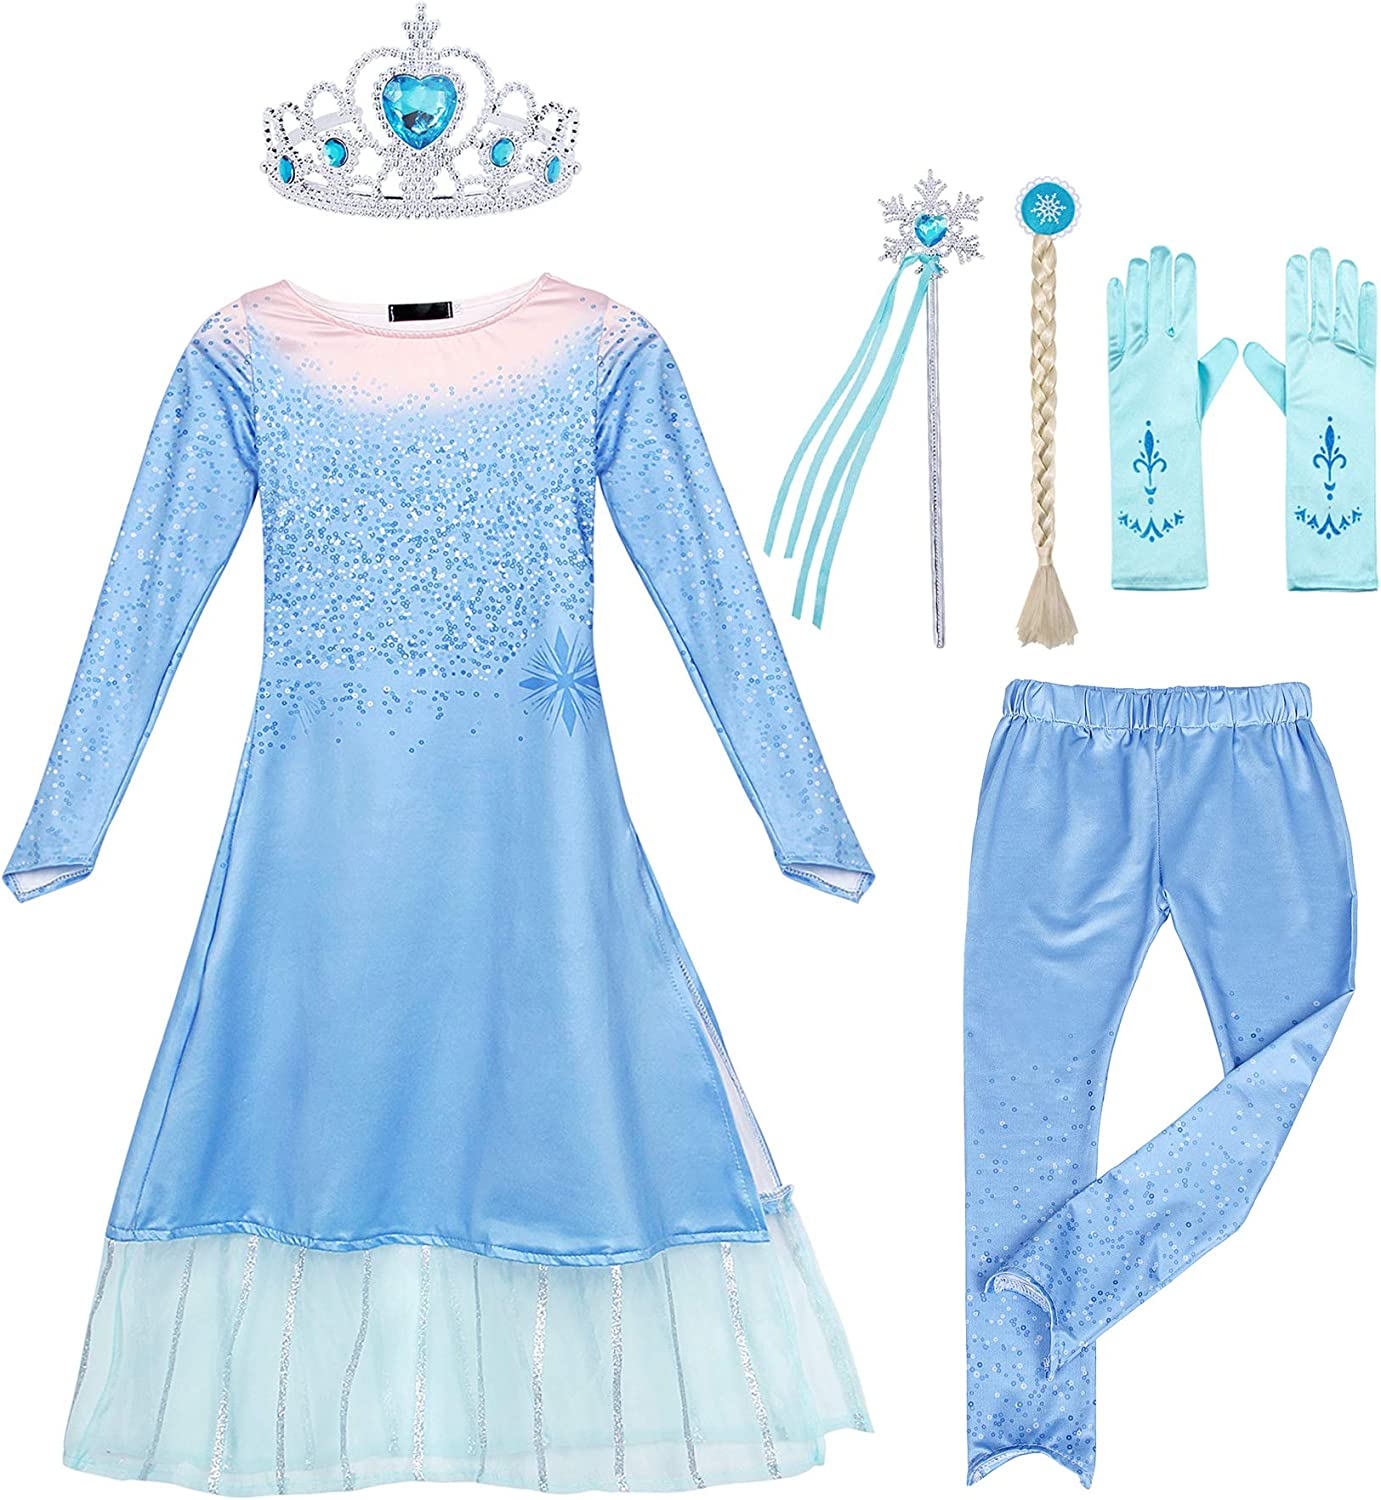 AmzBarley Princess Outfits Set for Girls Birthday Party Dress Up Halloween Costume 2-Pieces Winter Clothes with Accessories